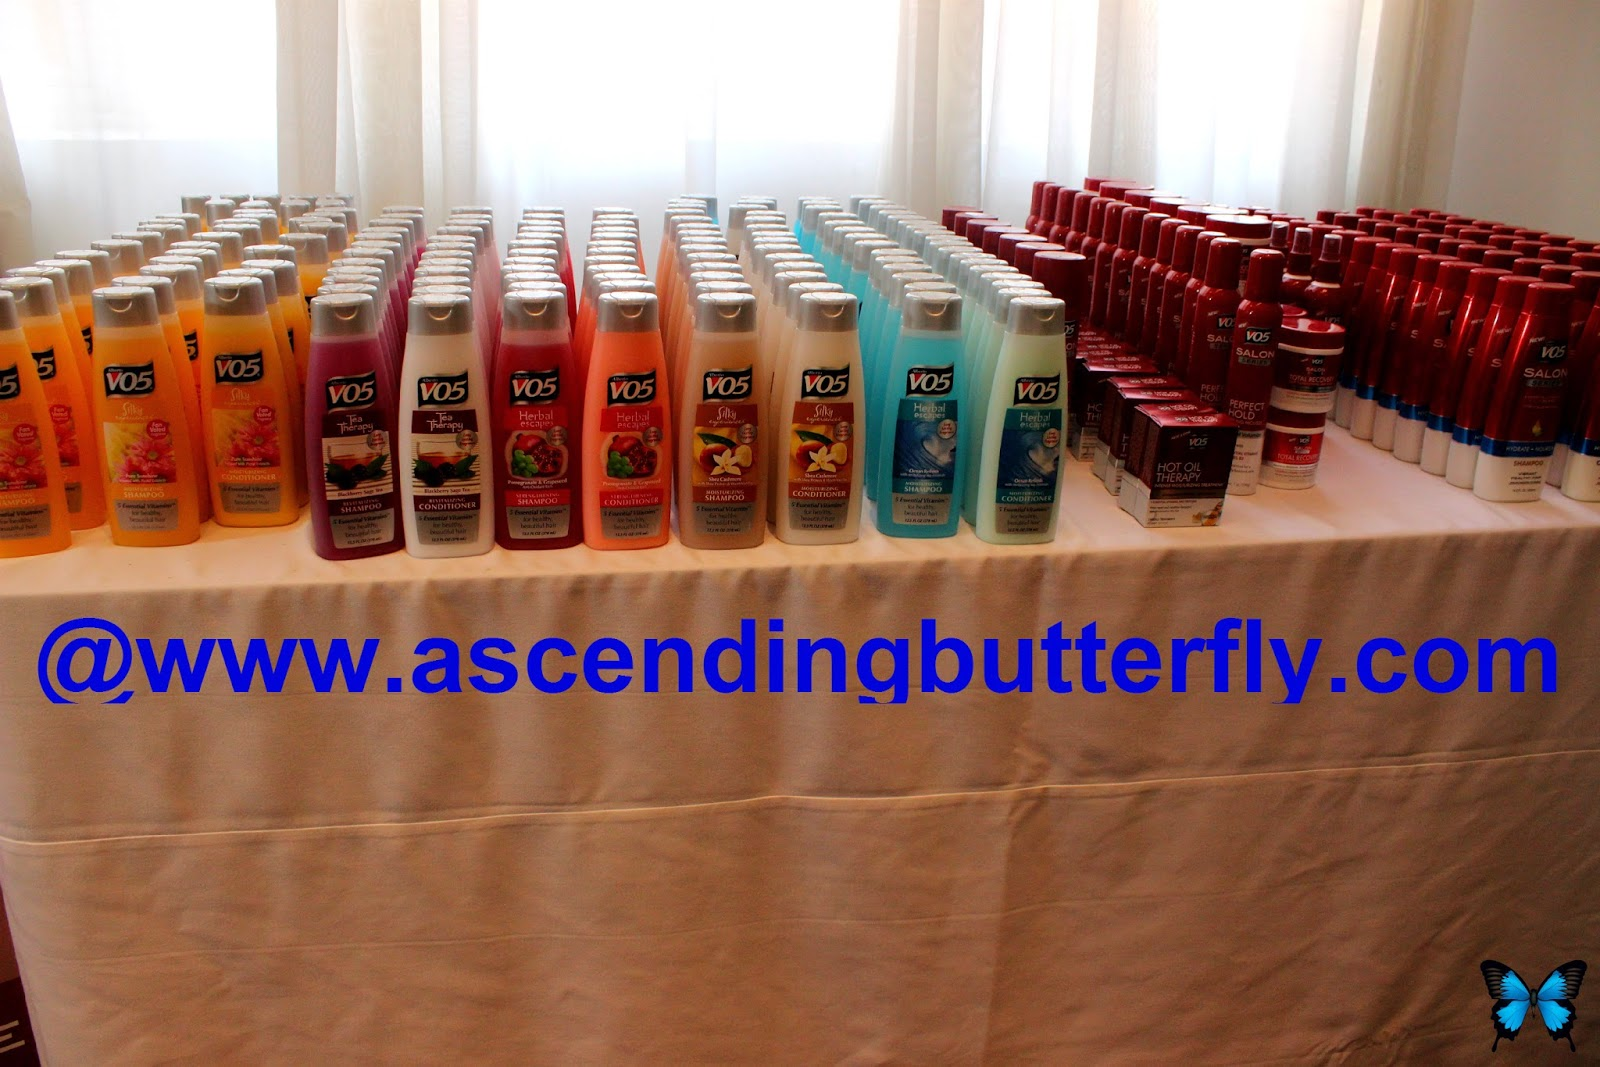 Alberto V05 Products on Display at Getting Gorgeous 2014